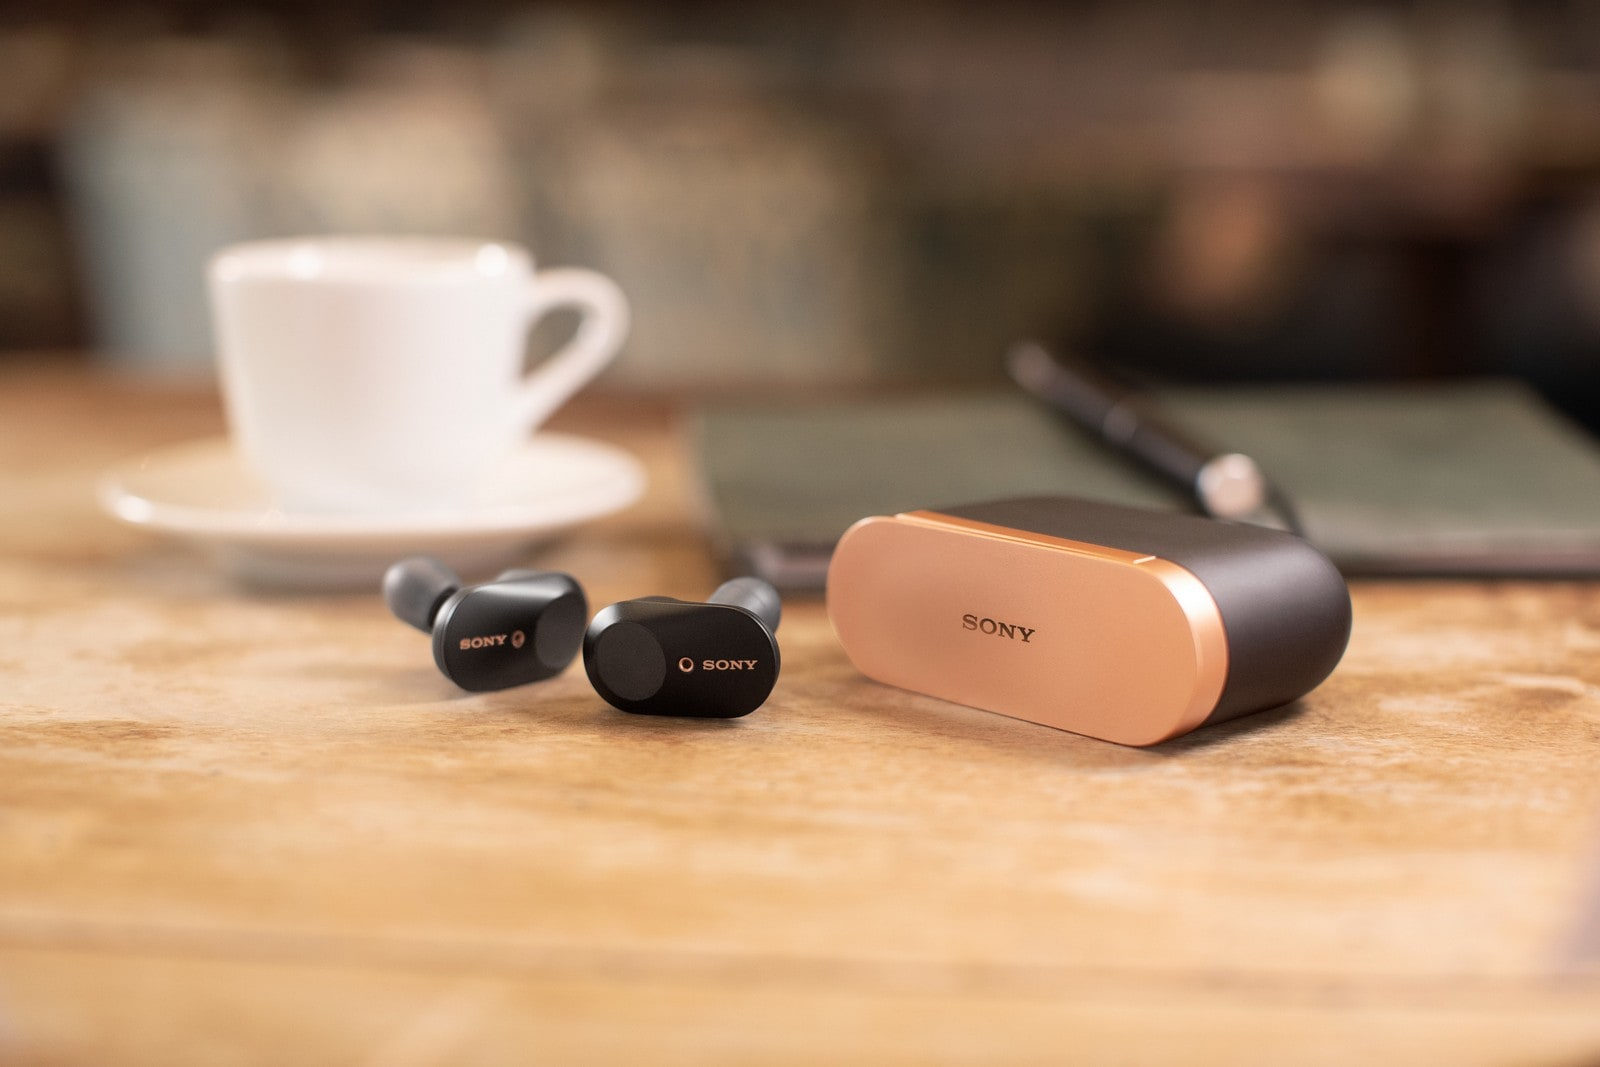 Sony's revamped wireless noise-canceling earbuds are a revelation